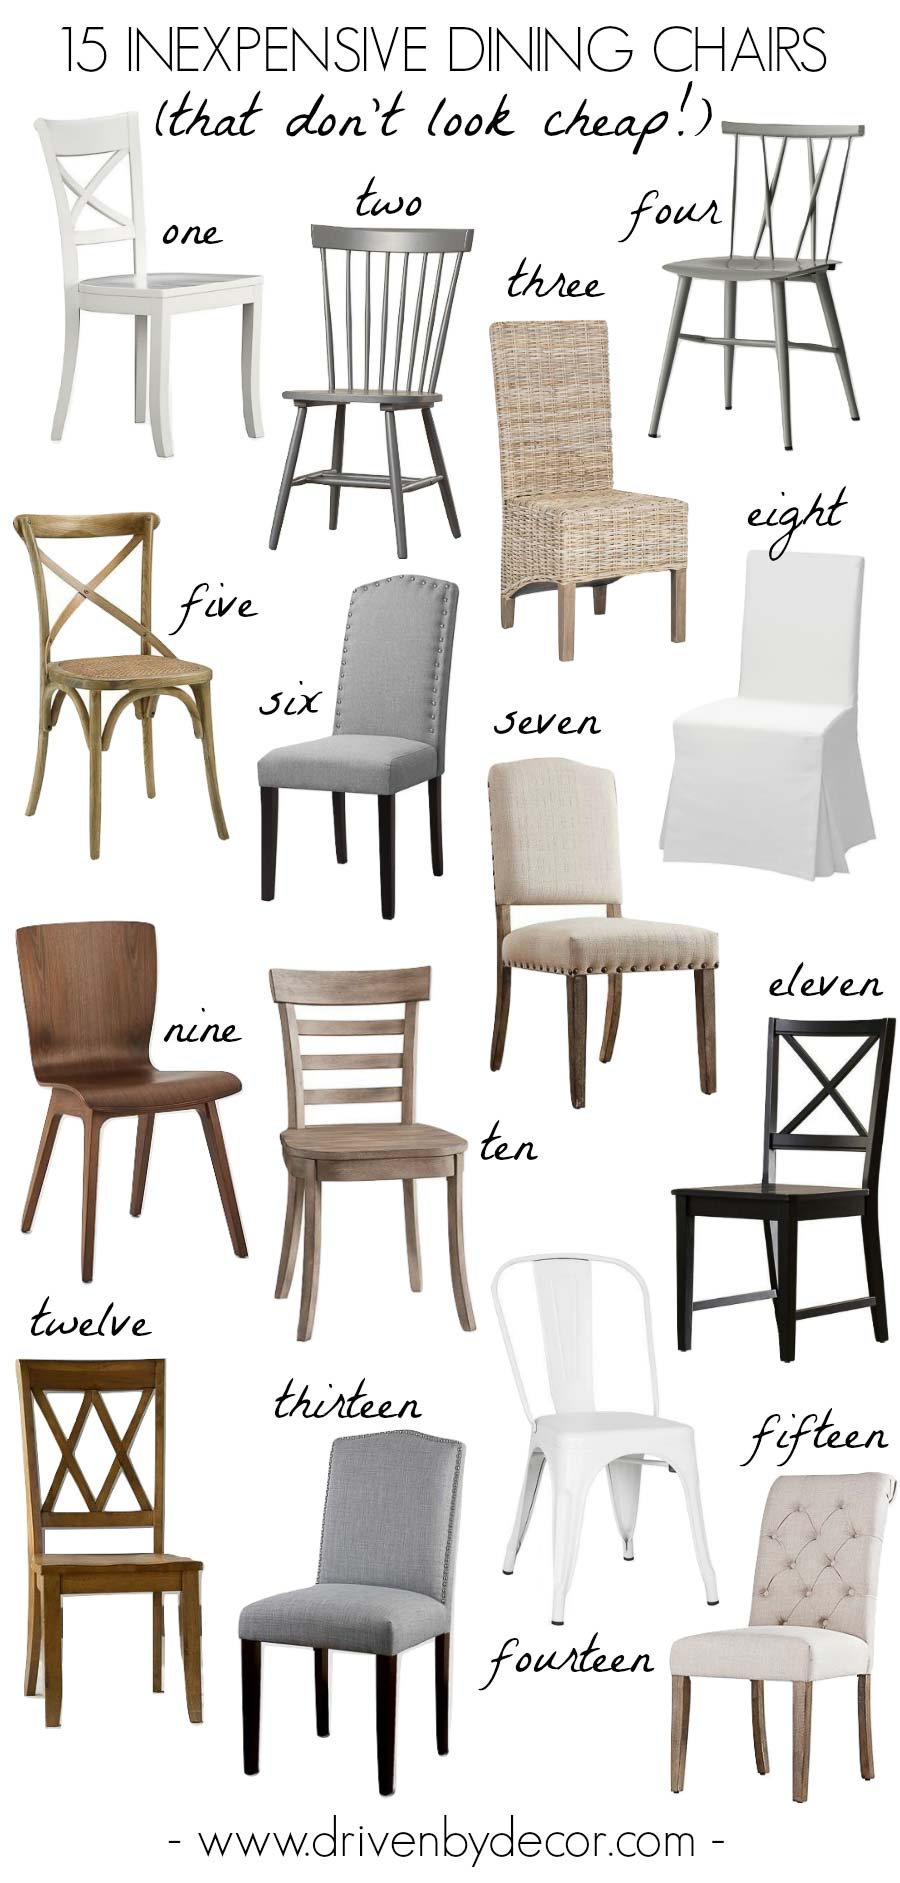 The best inexpensive dining chairs that don't look cheap!